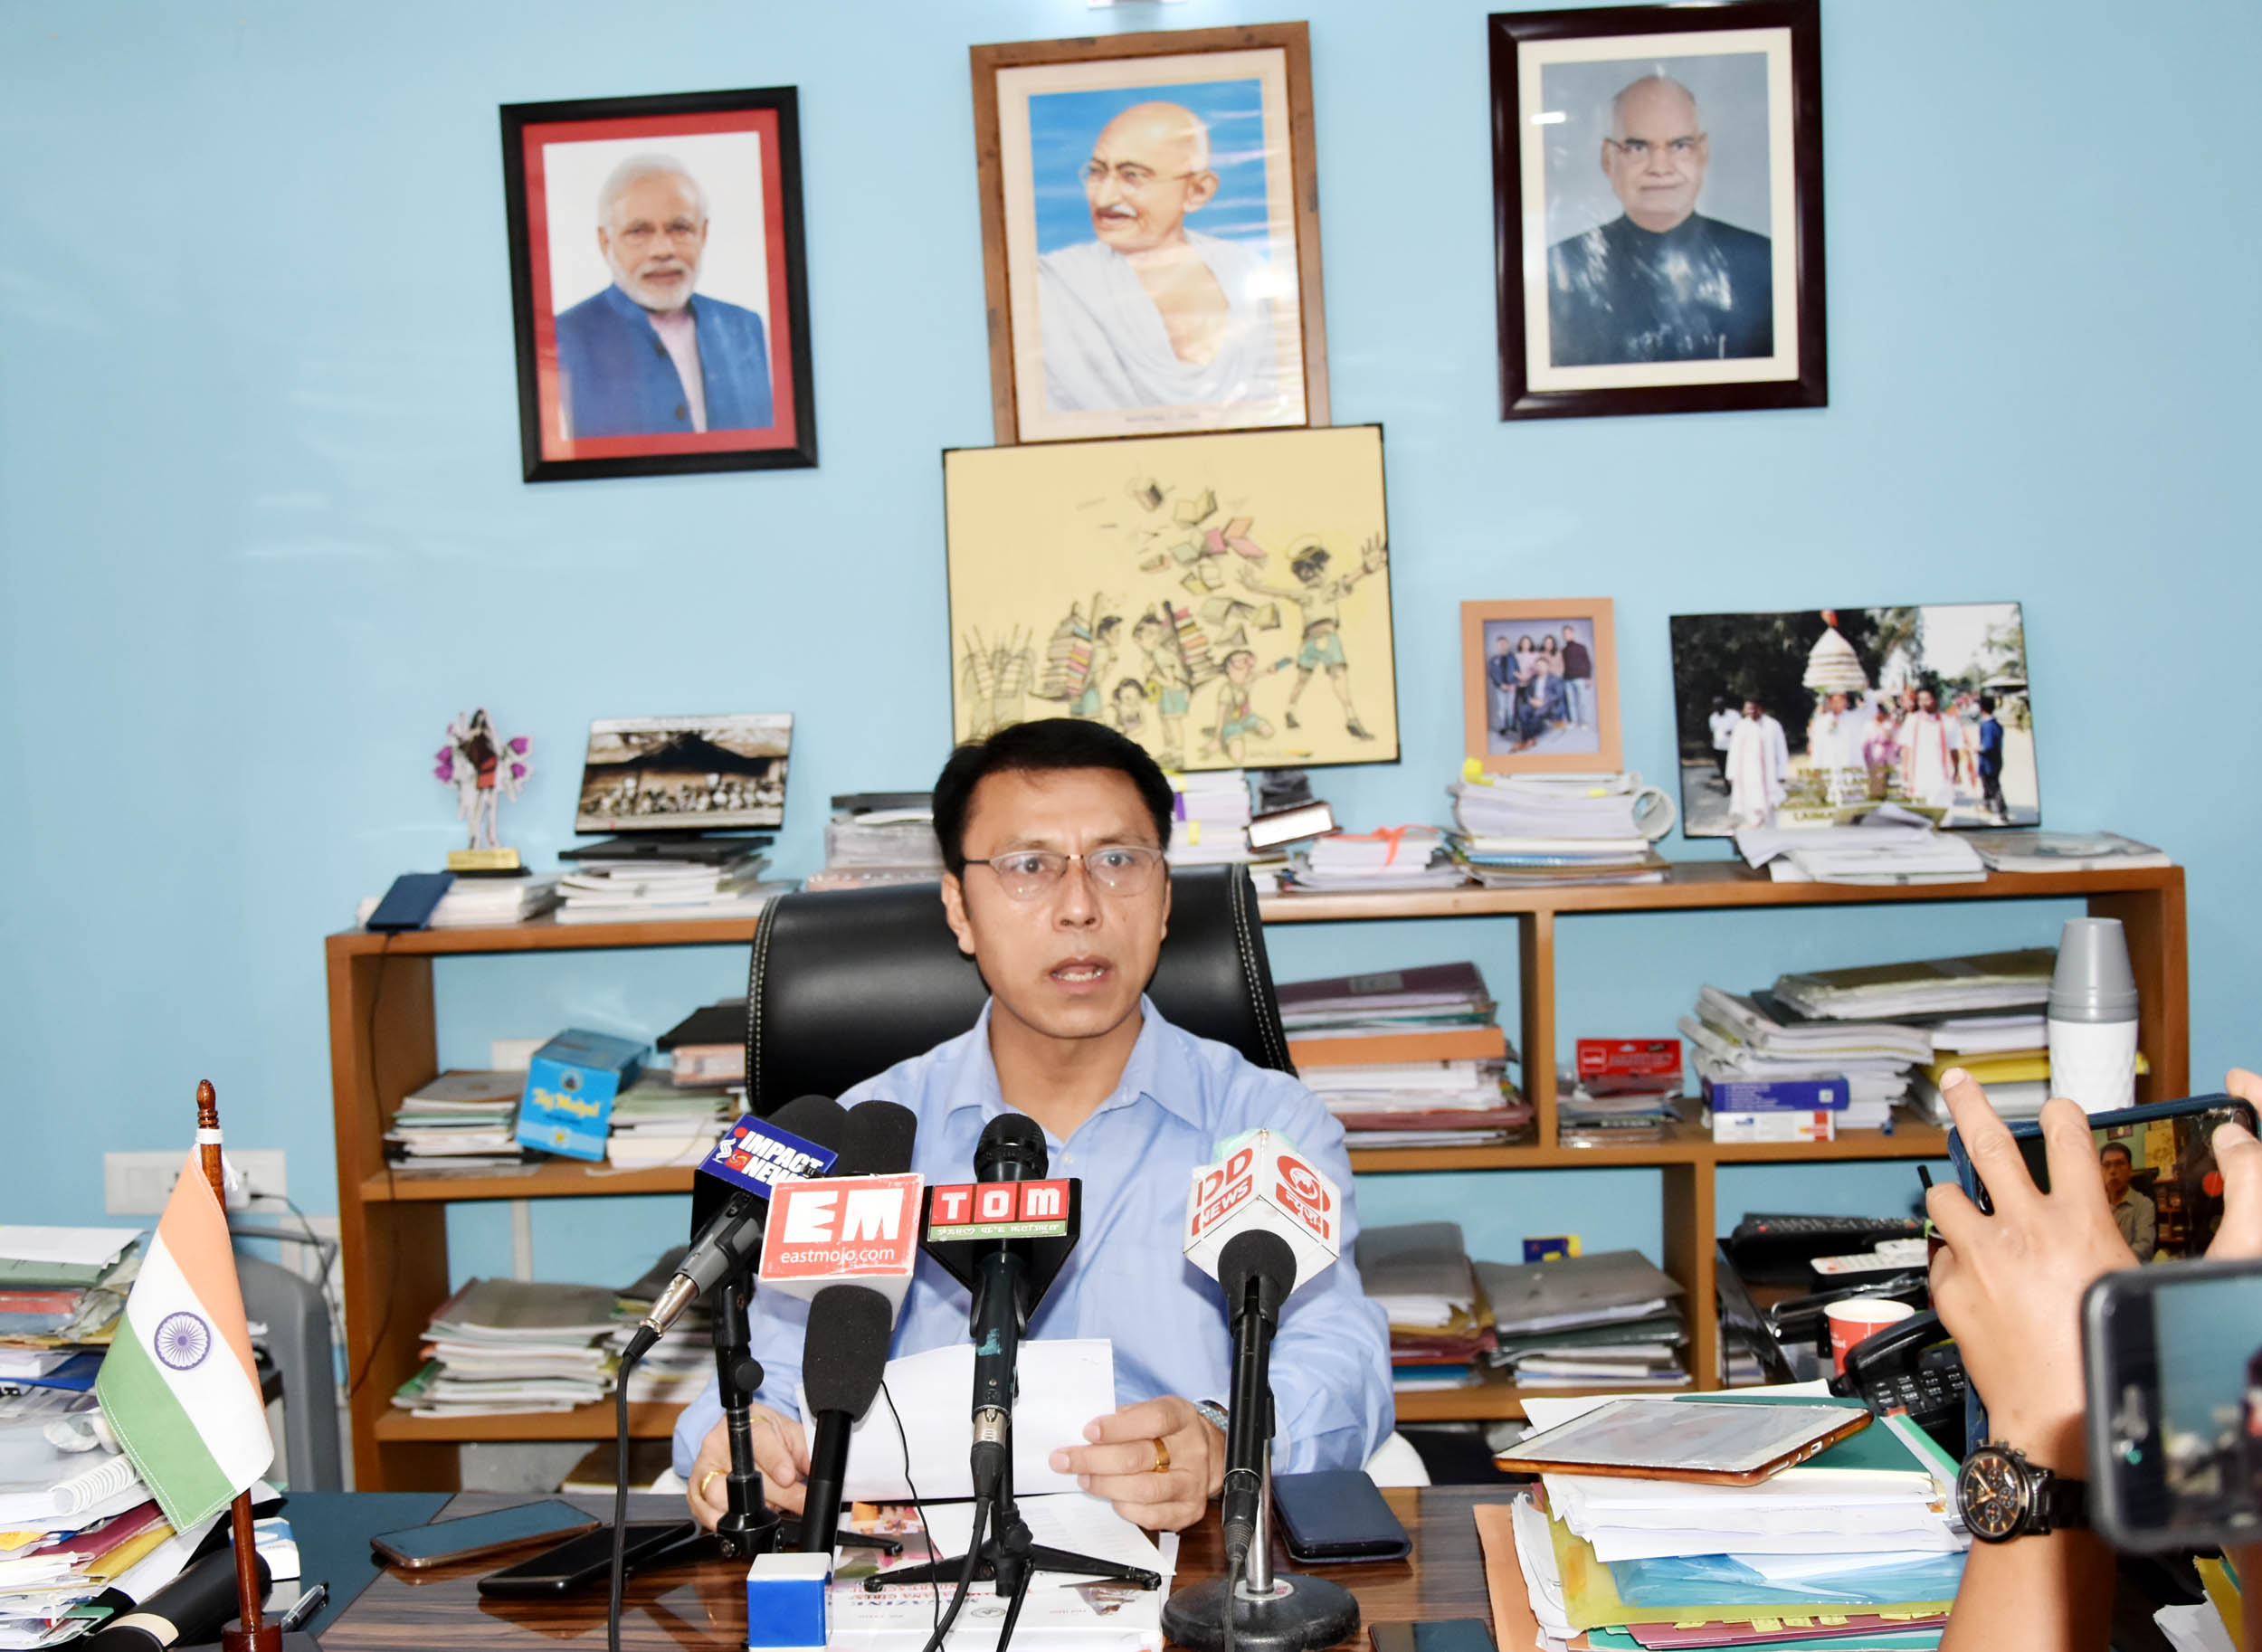 State govt yet to finalise decision on reopening of schools: Education Minister